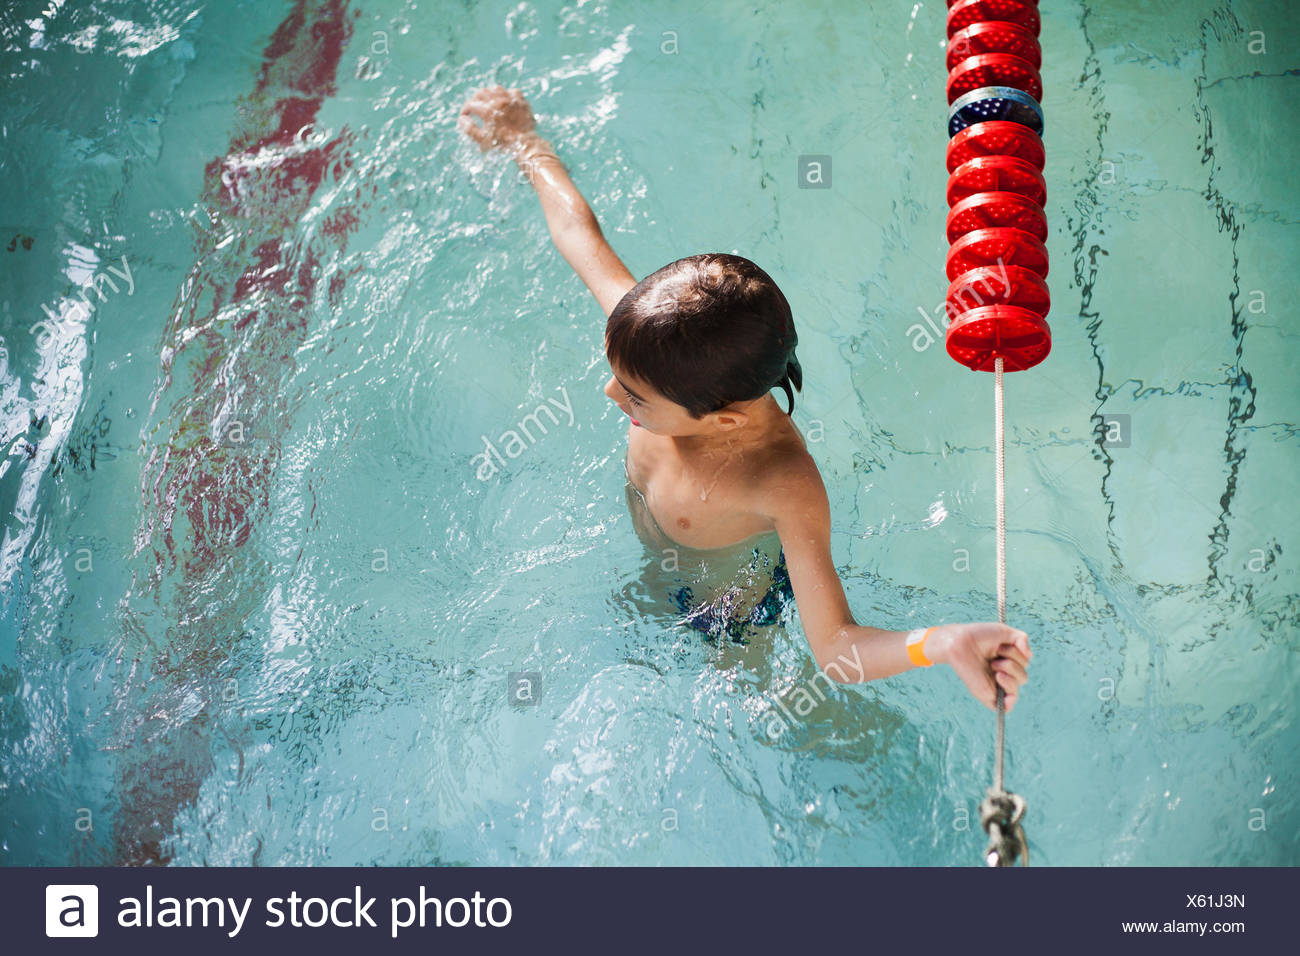 High angle view of boy holding onto rope in swimming pool - Stock Image